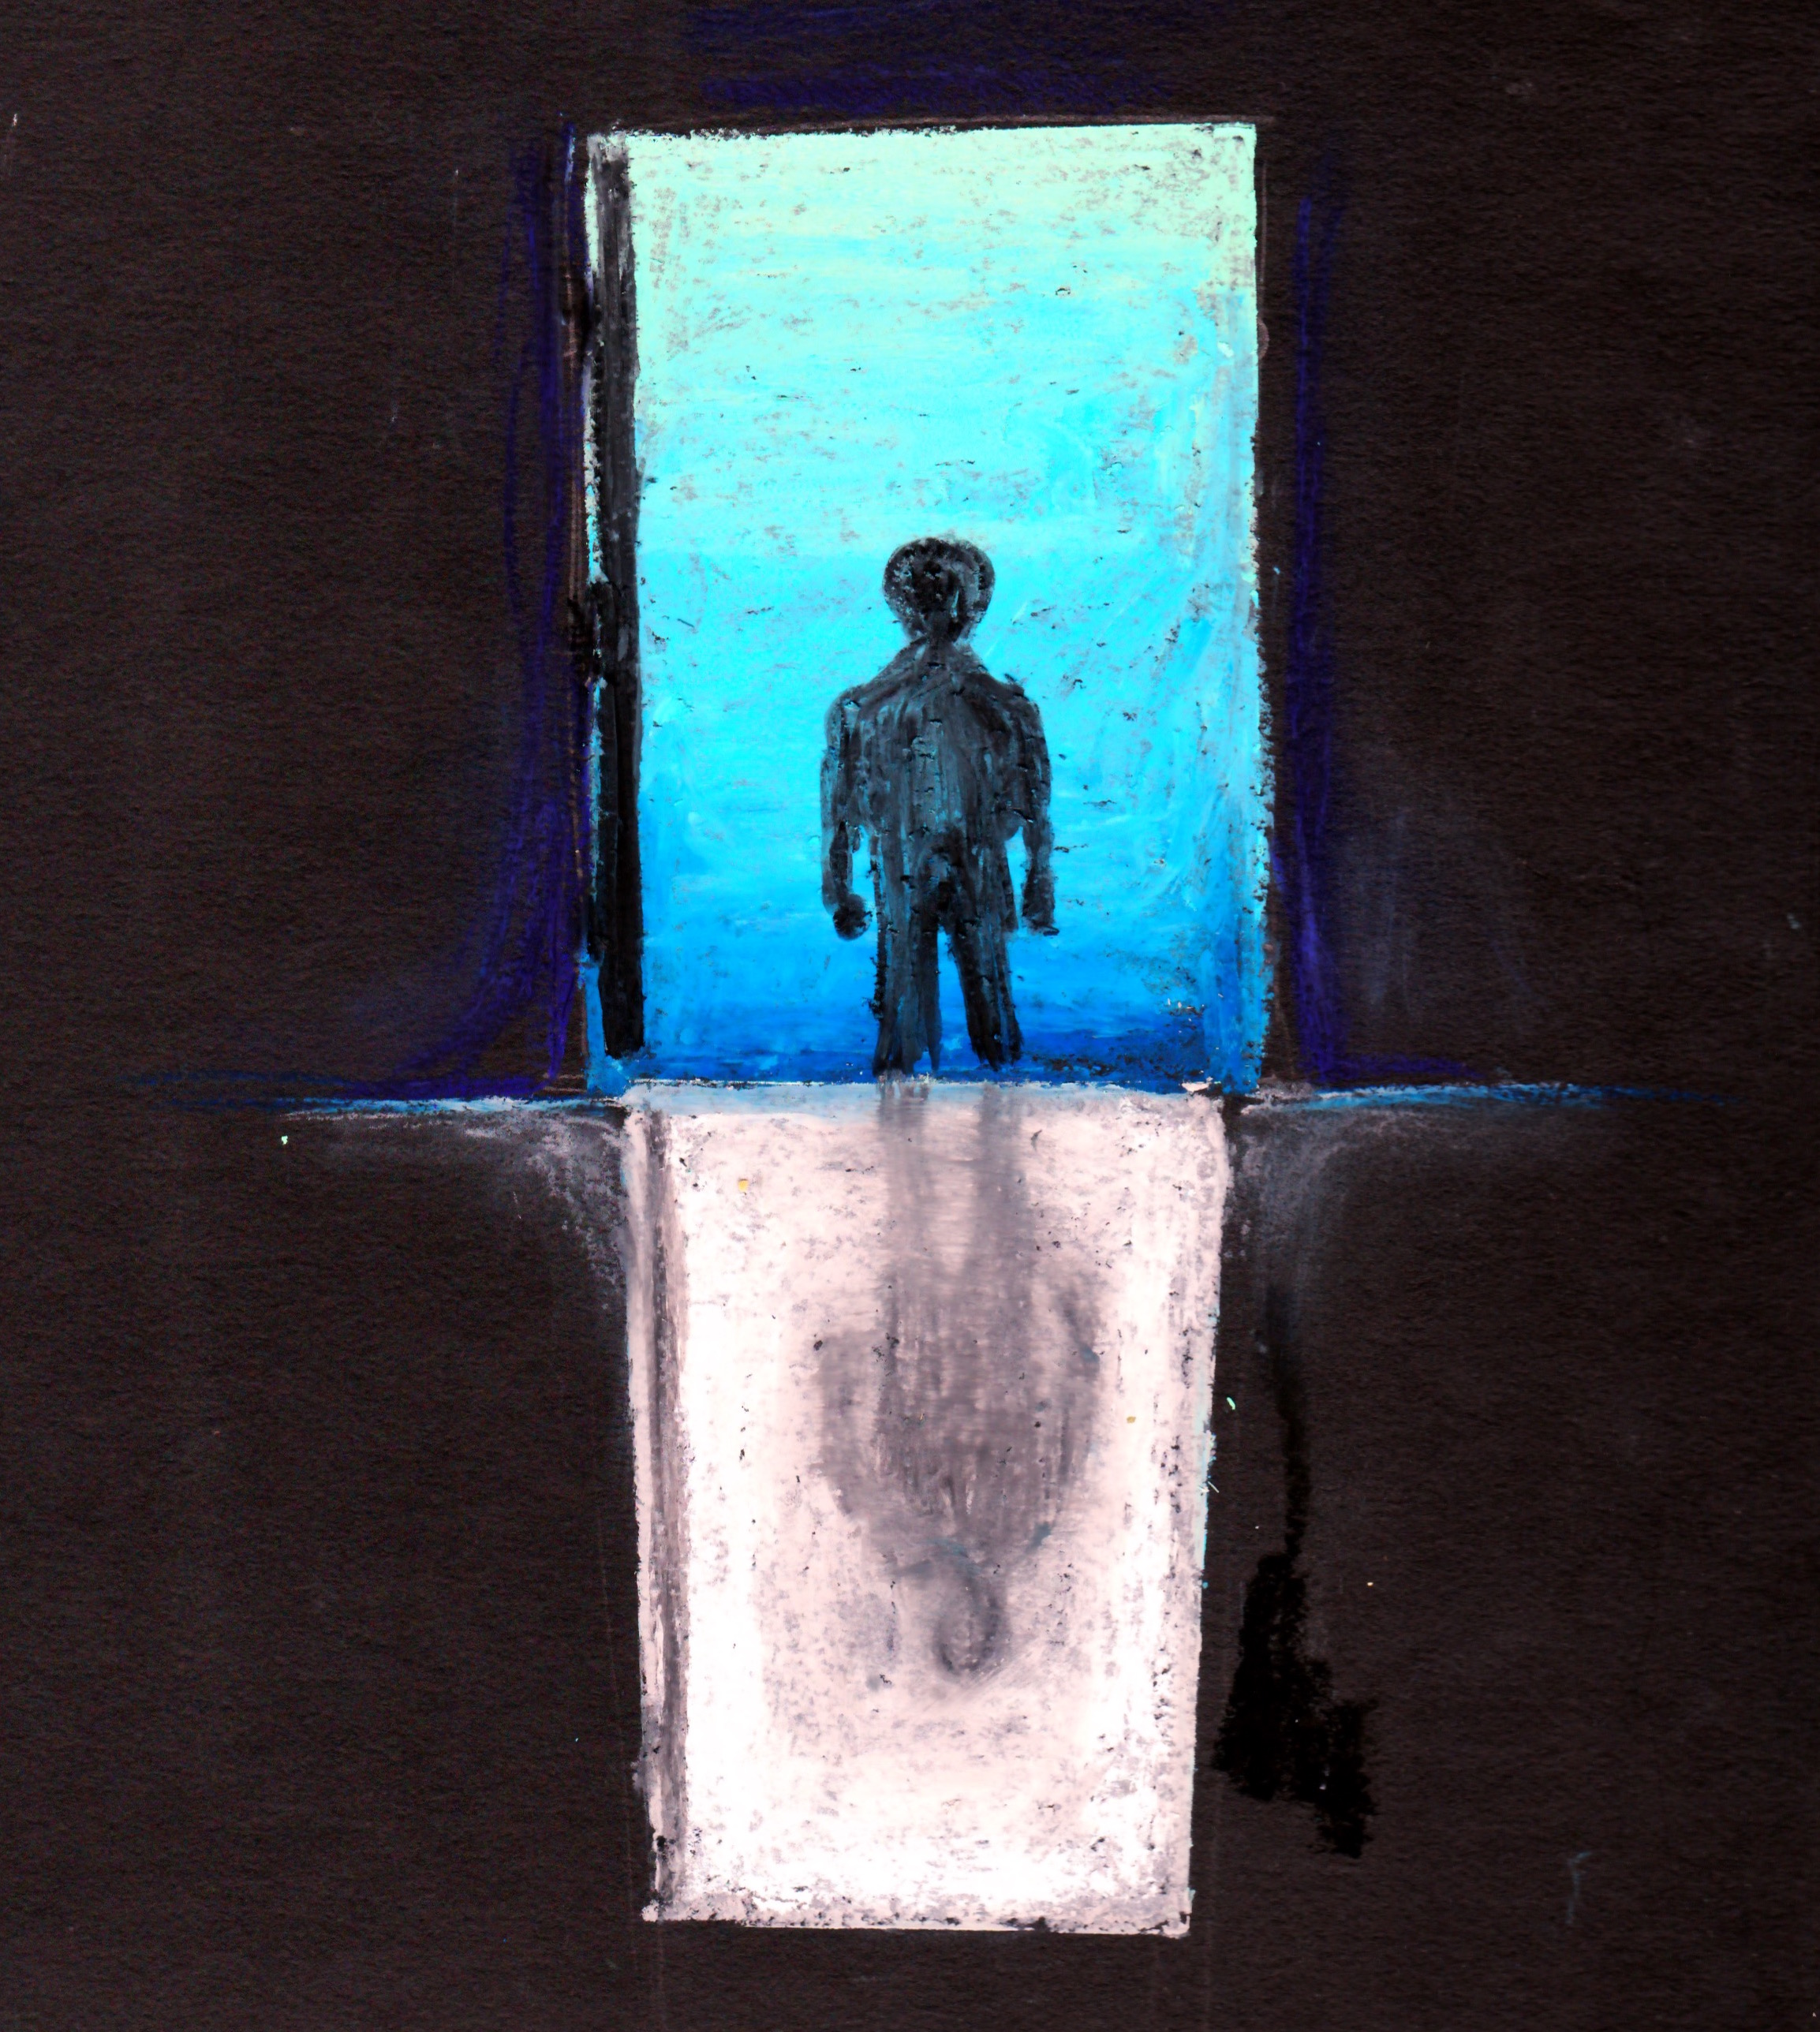 drawing of a person walking out a door way with light shining in casting a shadow